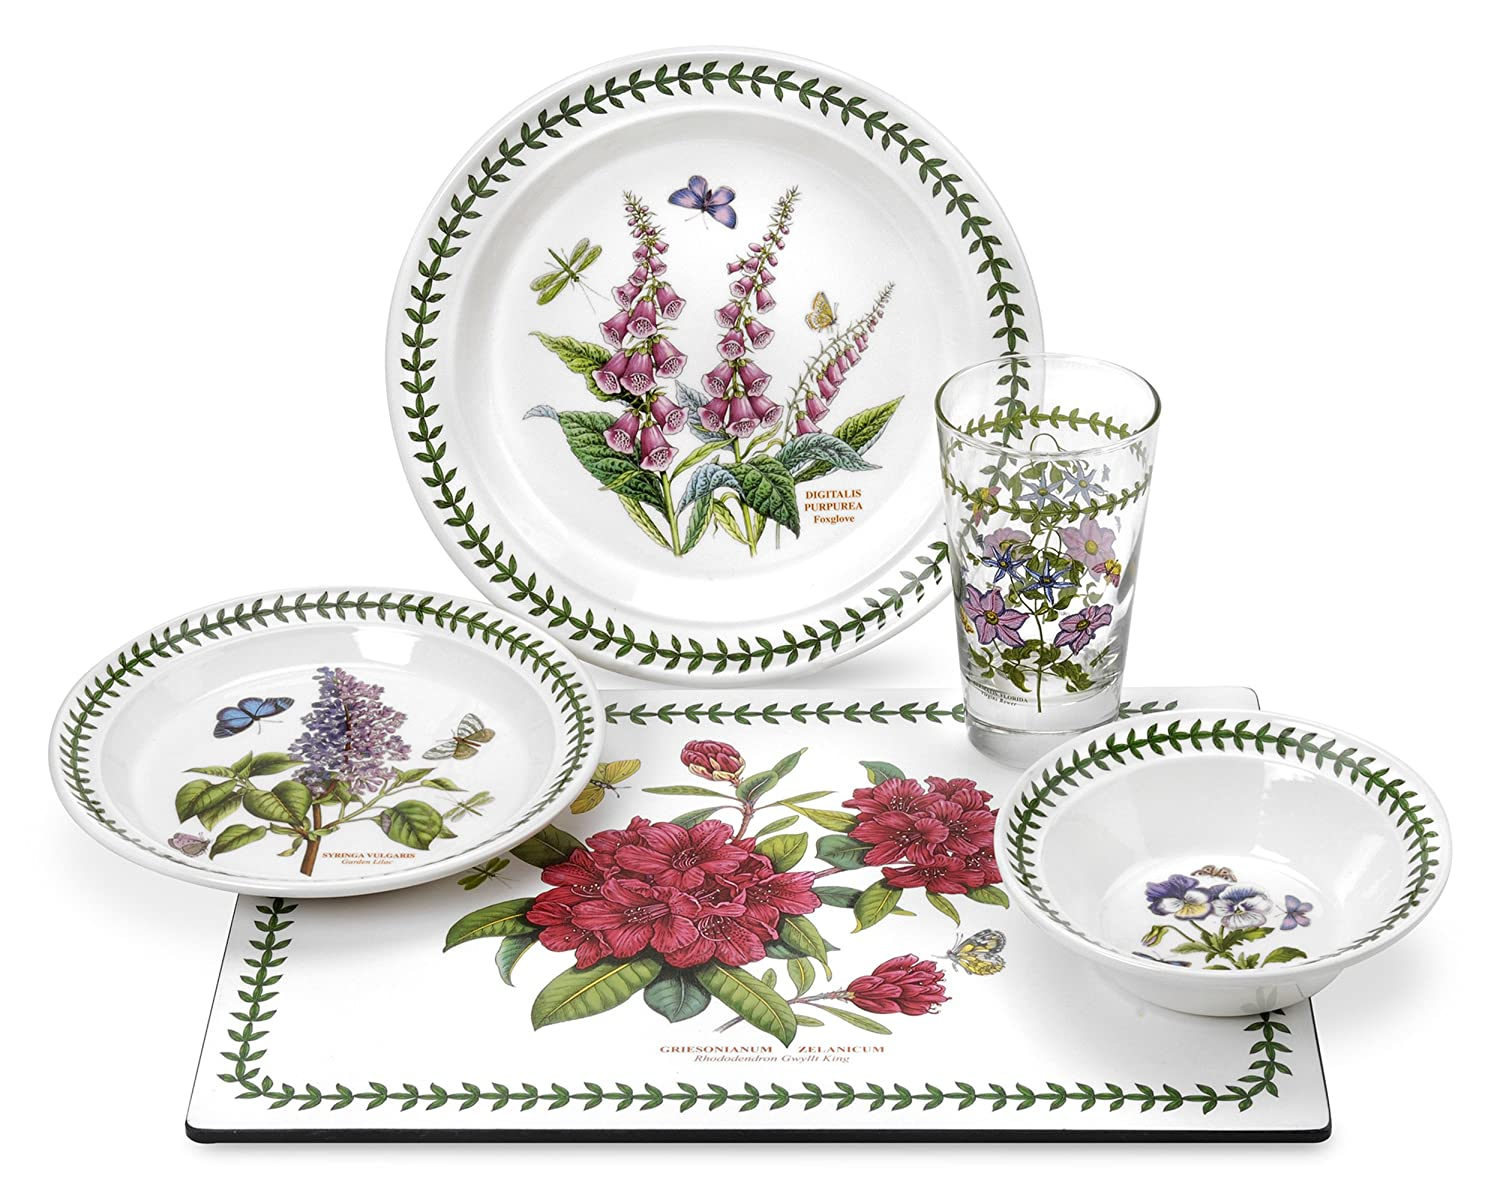 Portmeirion dinnerware botanic garden 21 piece set for Portmeirion dinnerware set of 4 botanic garden canape plates